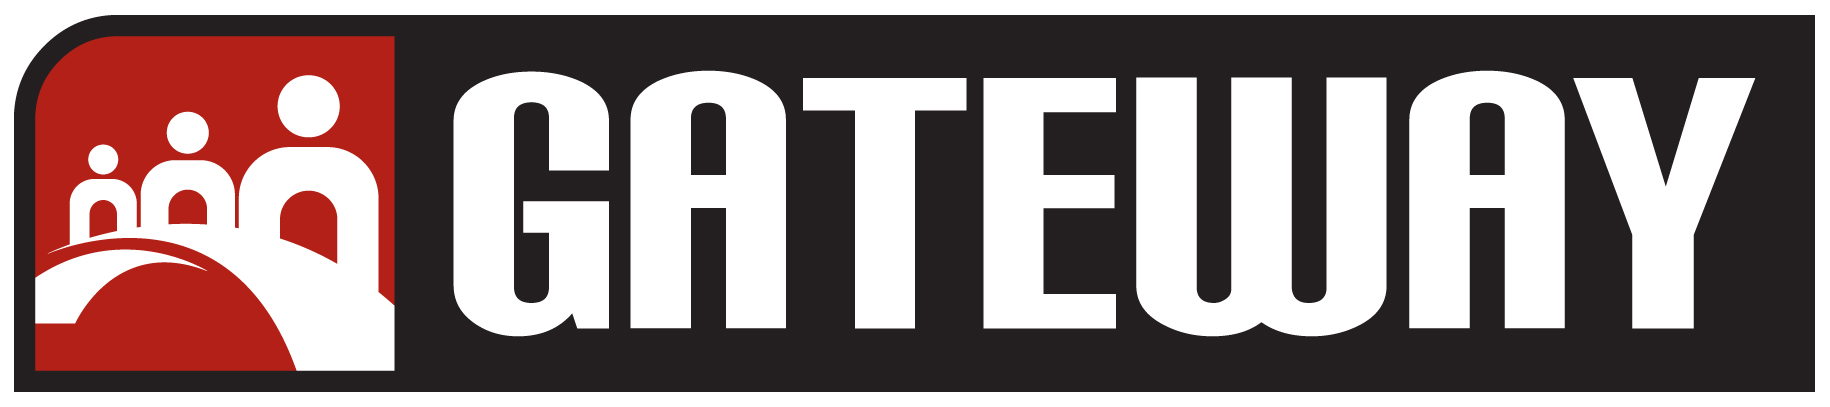 GatewayLogoColour.jpg